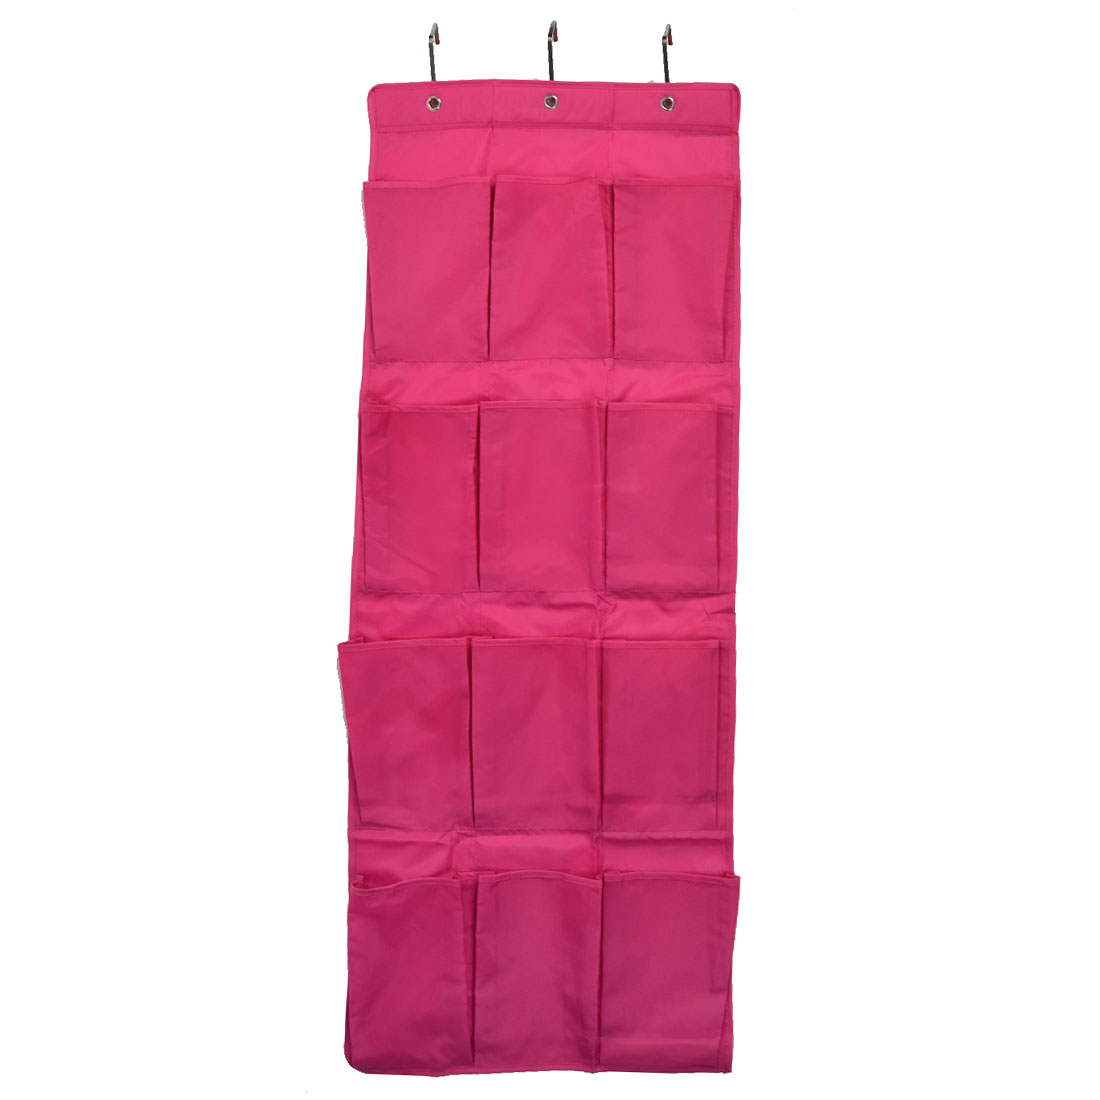 Household 12 Pockets Shoe Toiletry Cosmetic Organizer Holder Hanging Bag Fuchsia